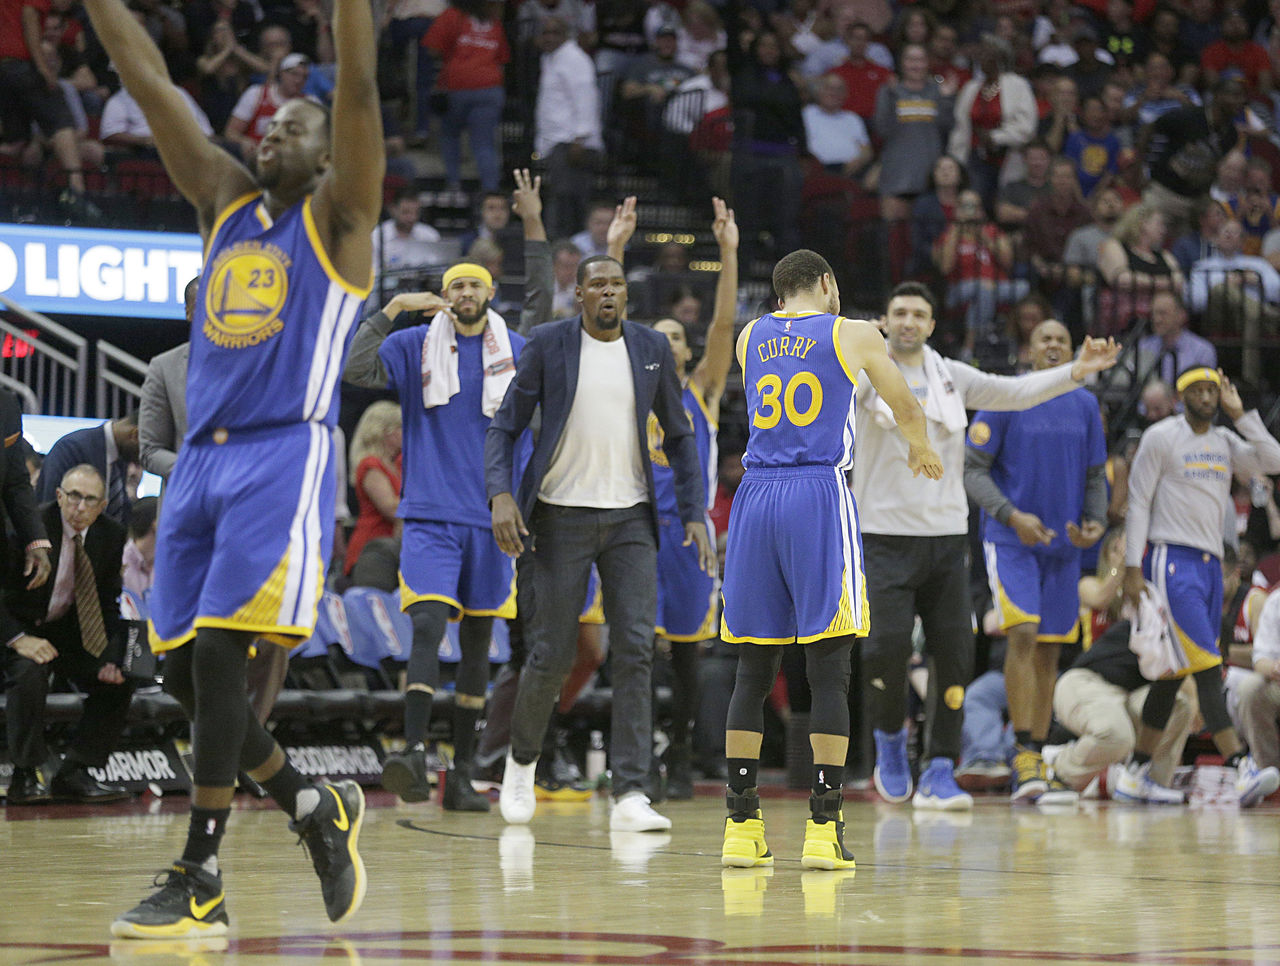 Cropped_2017-03-29t031117z_1560986040_nocid_rtrmadp_3_nba-golden-state-warriors-at-houston-rockets